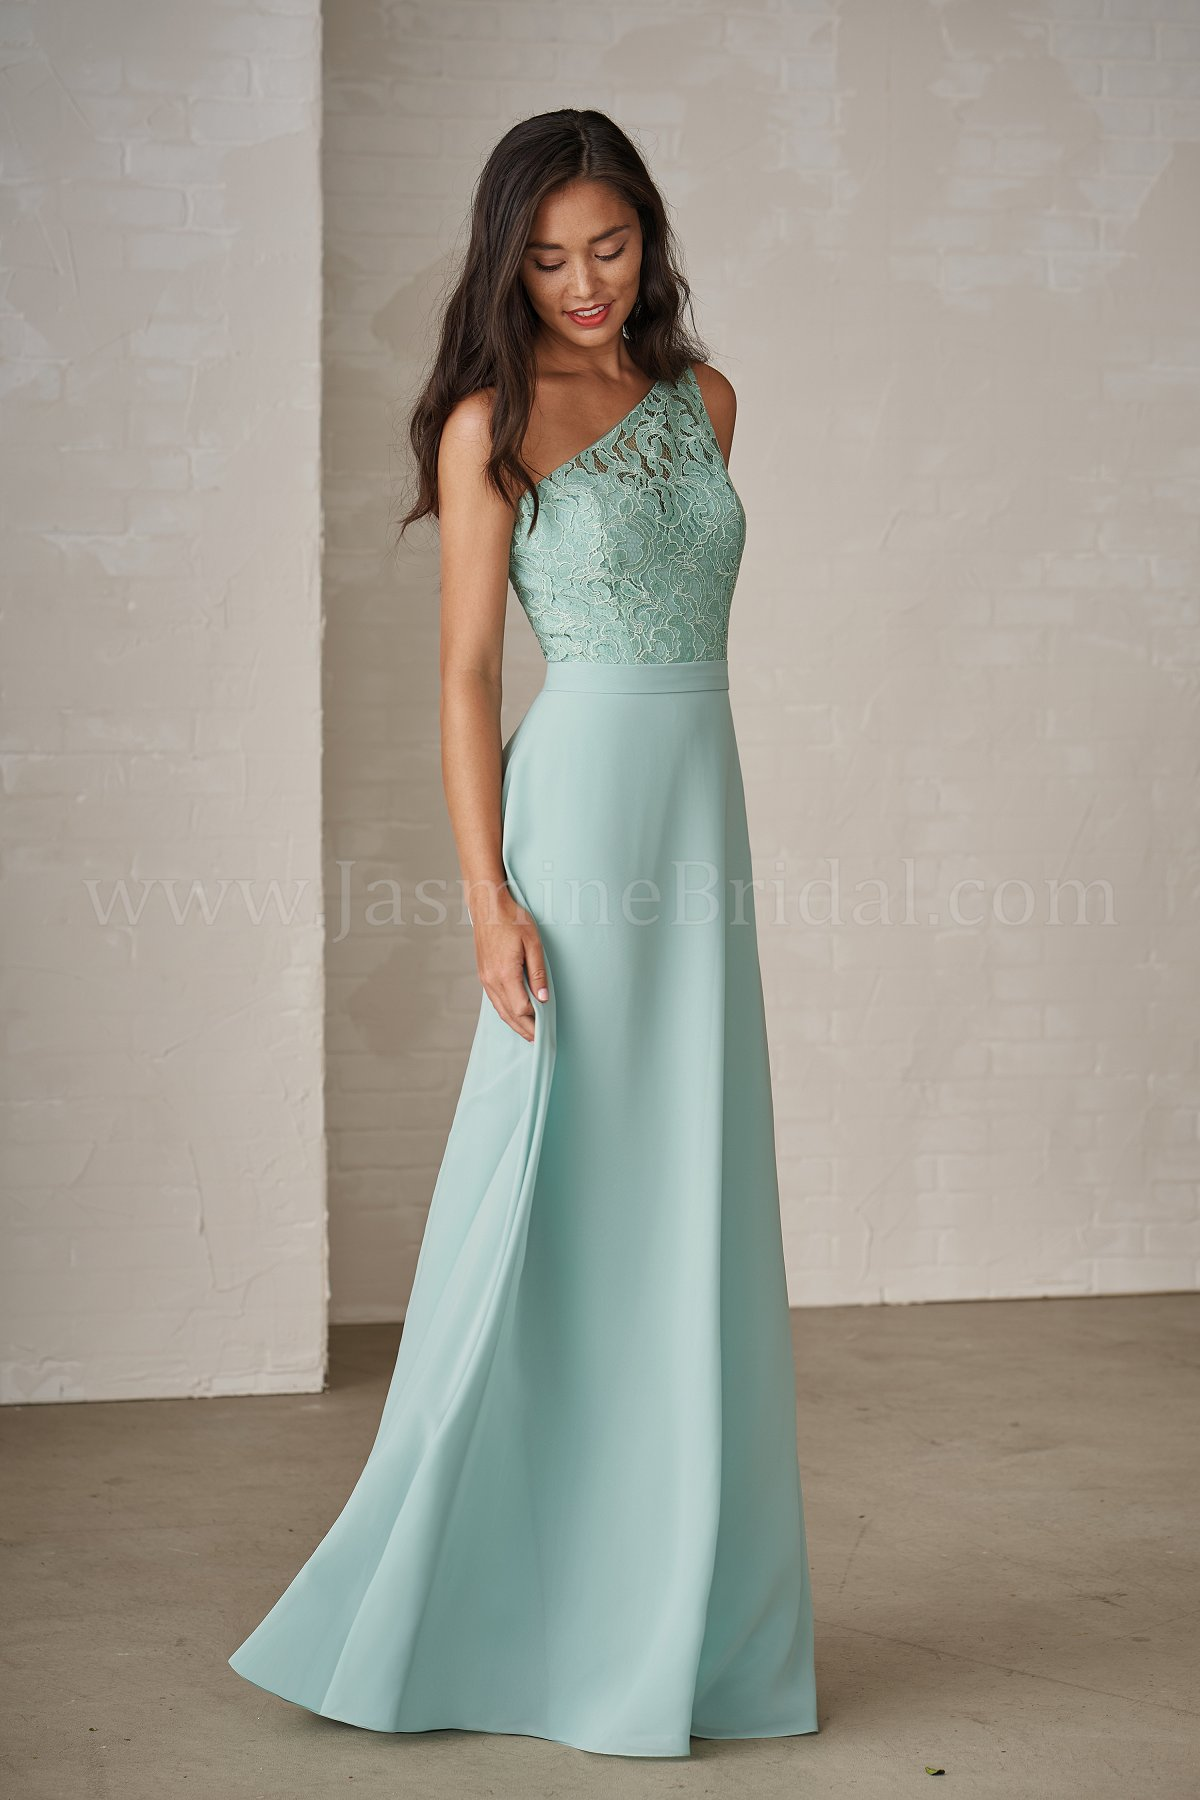 P206009 Long One Shoulder Lace Georgette Bridesmaid Dress